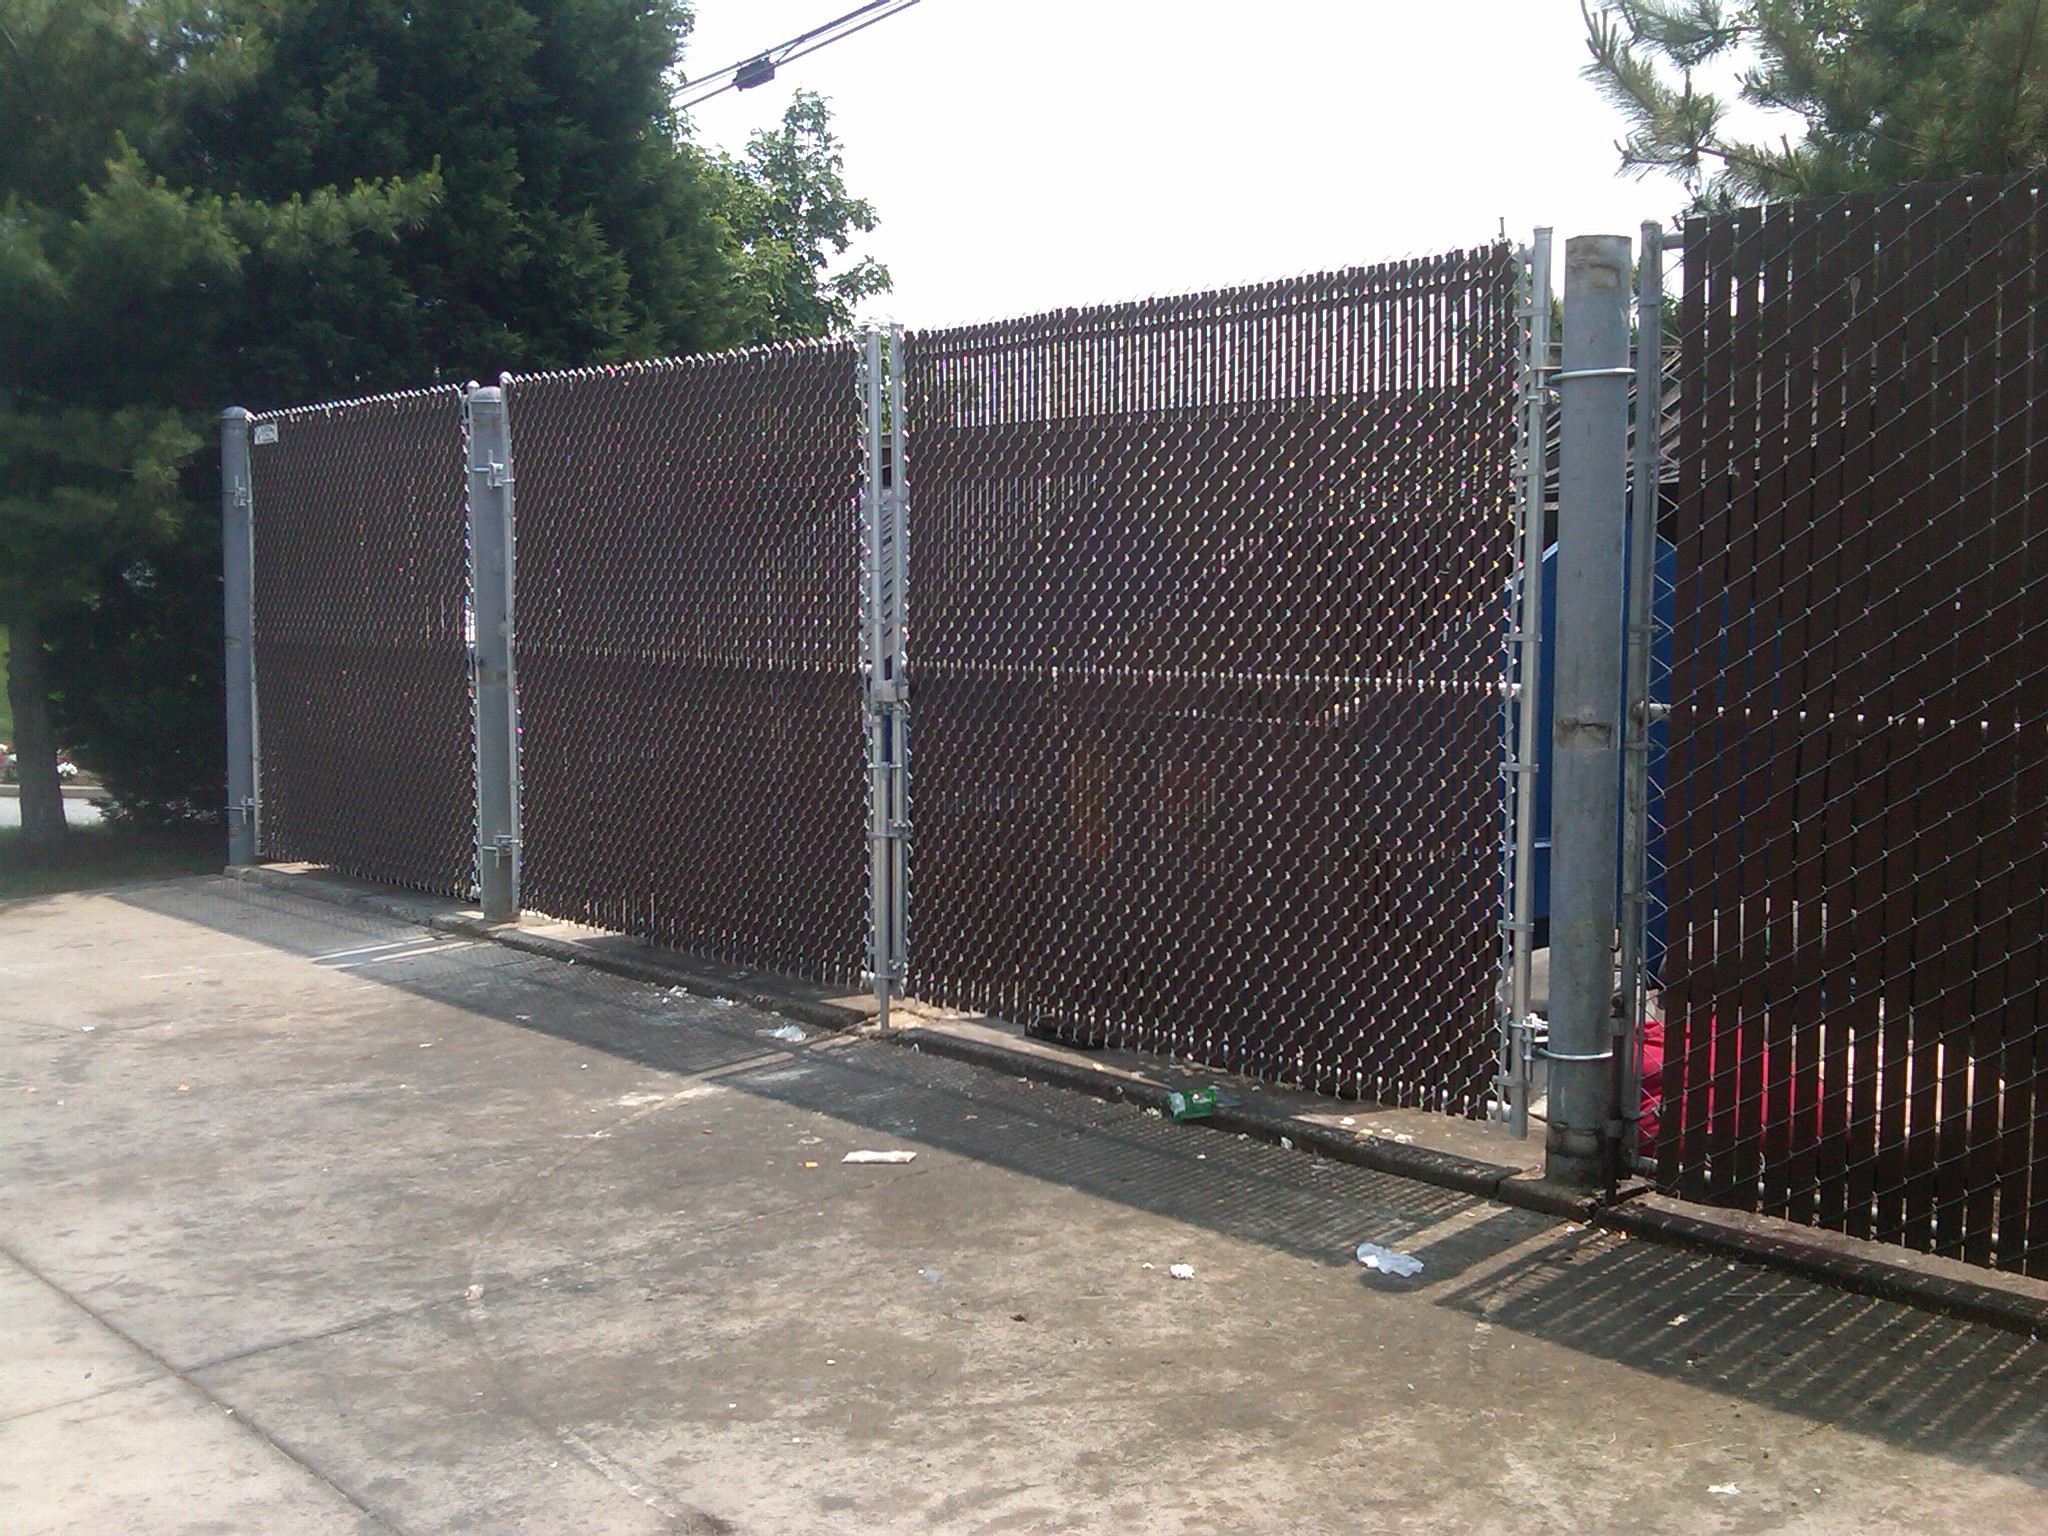 Maryland Fence Company - Vinyl Fencing, Wood Fencing, Chain Link Fencing